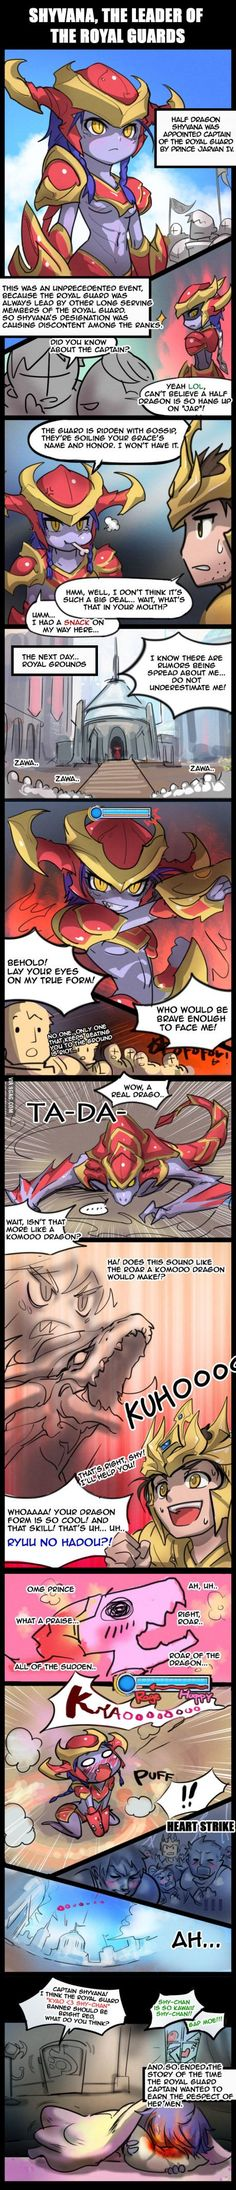 Shyvana, The Leader of the Royal Guards (Edited) by ptcrow on DeviantArt - League of Legends Shyvana League Of Legends, Leona League Of Legends, League Of Legends Memes, League Of Legends Characters, Cute Comics, Funny Comics, League Memes, Royal Guard, Riot Games